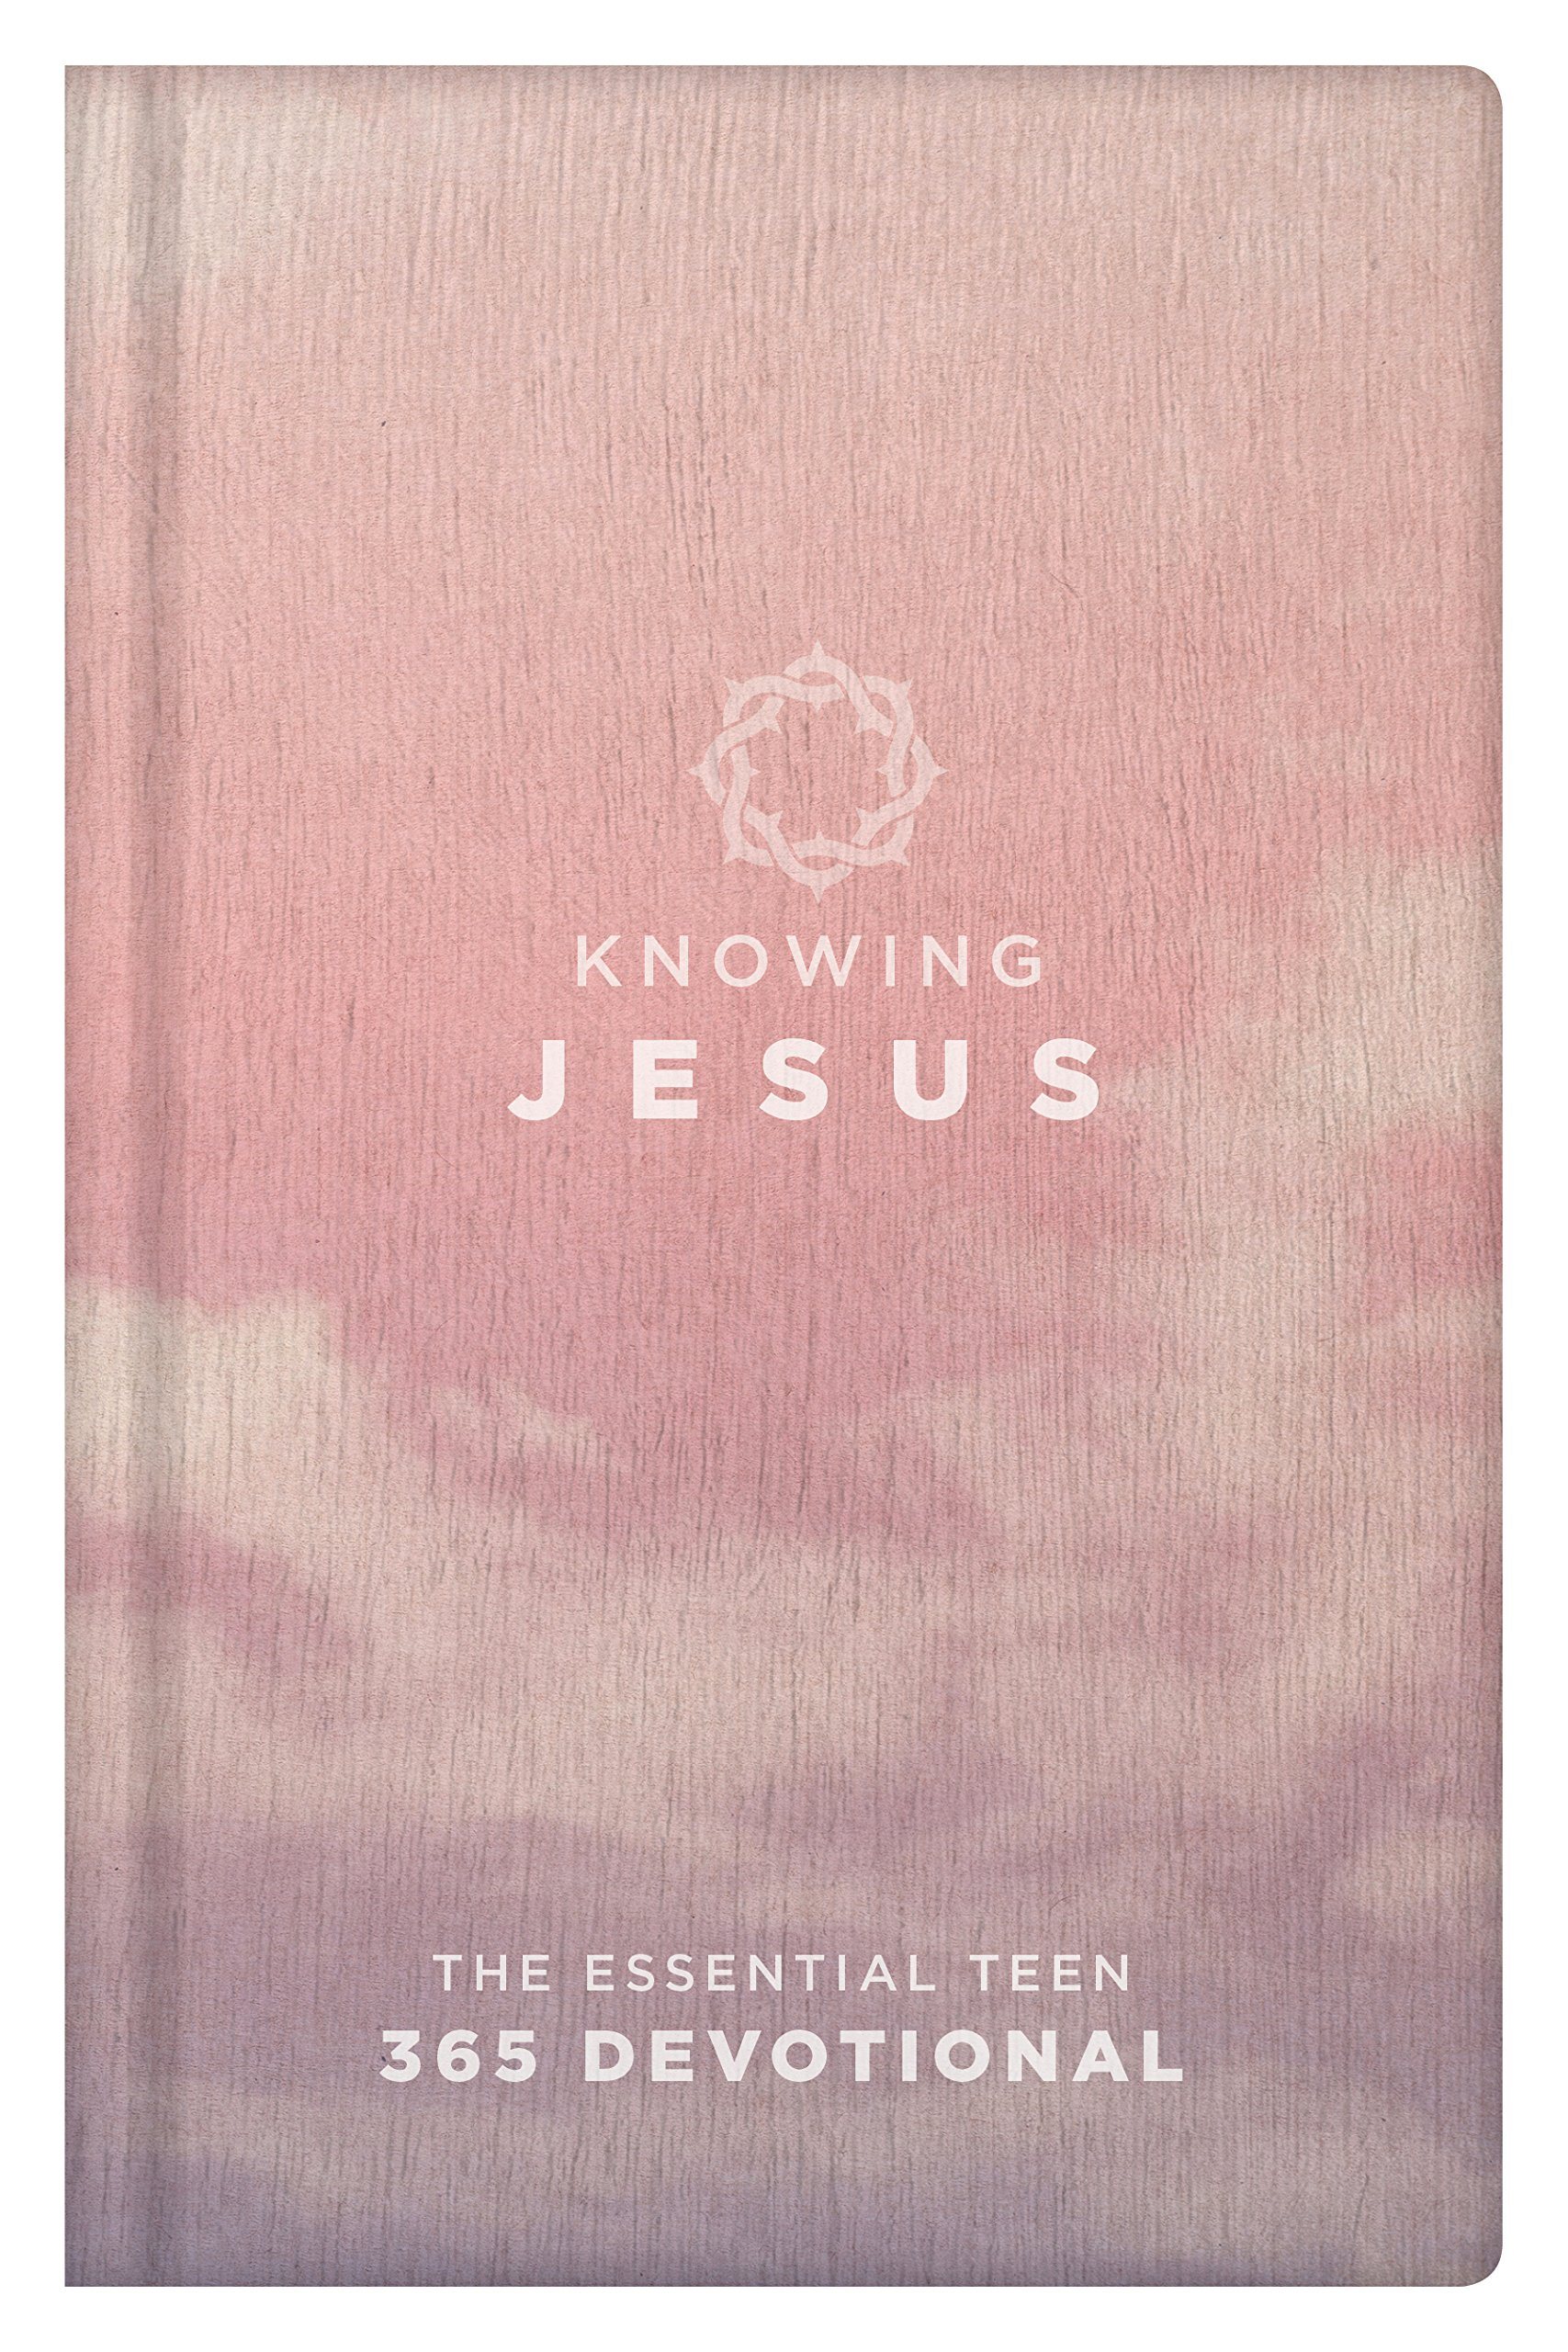 Download Knowing Jesus (Rose cover): The Essential Teen 365 Devotional pdf epub